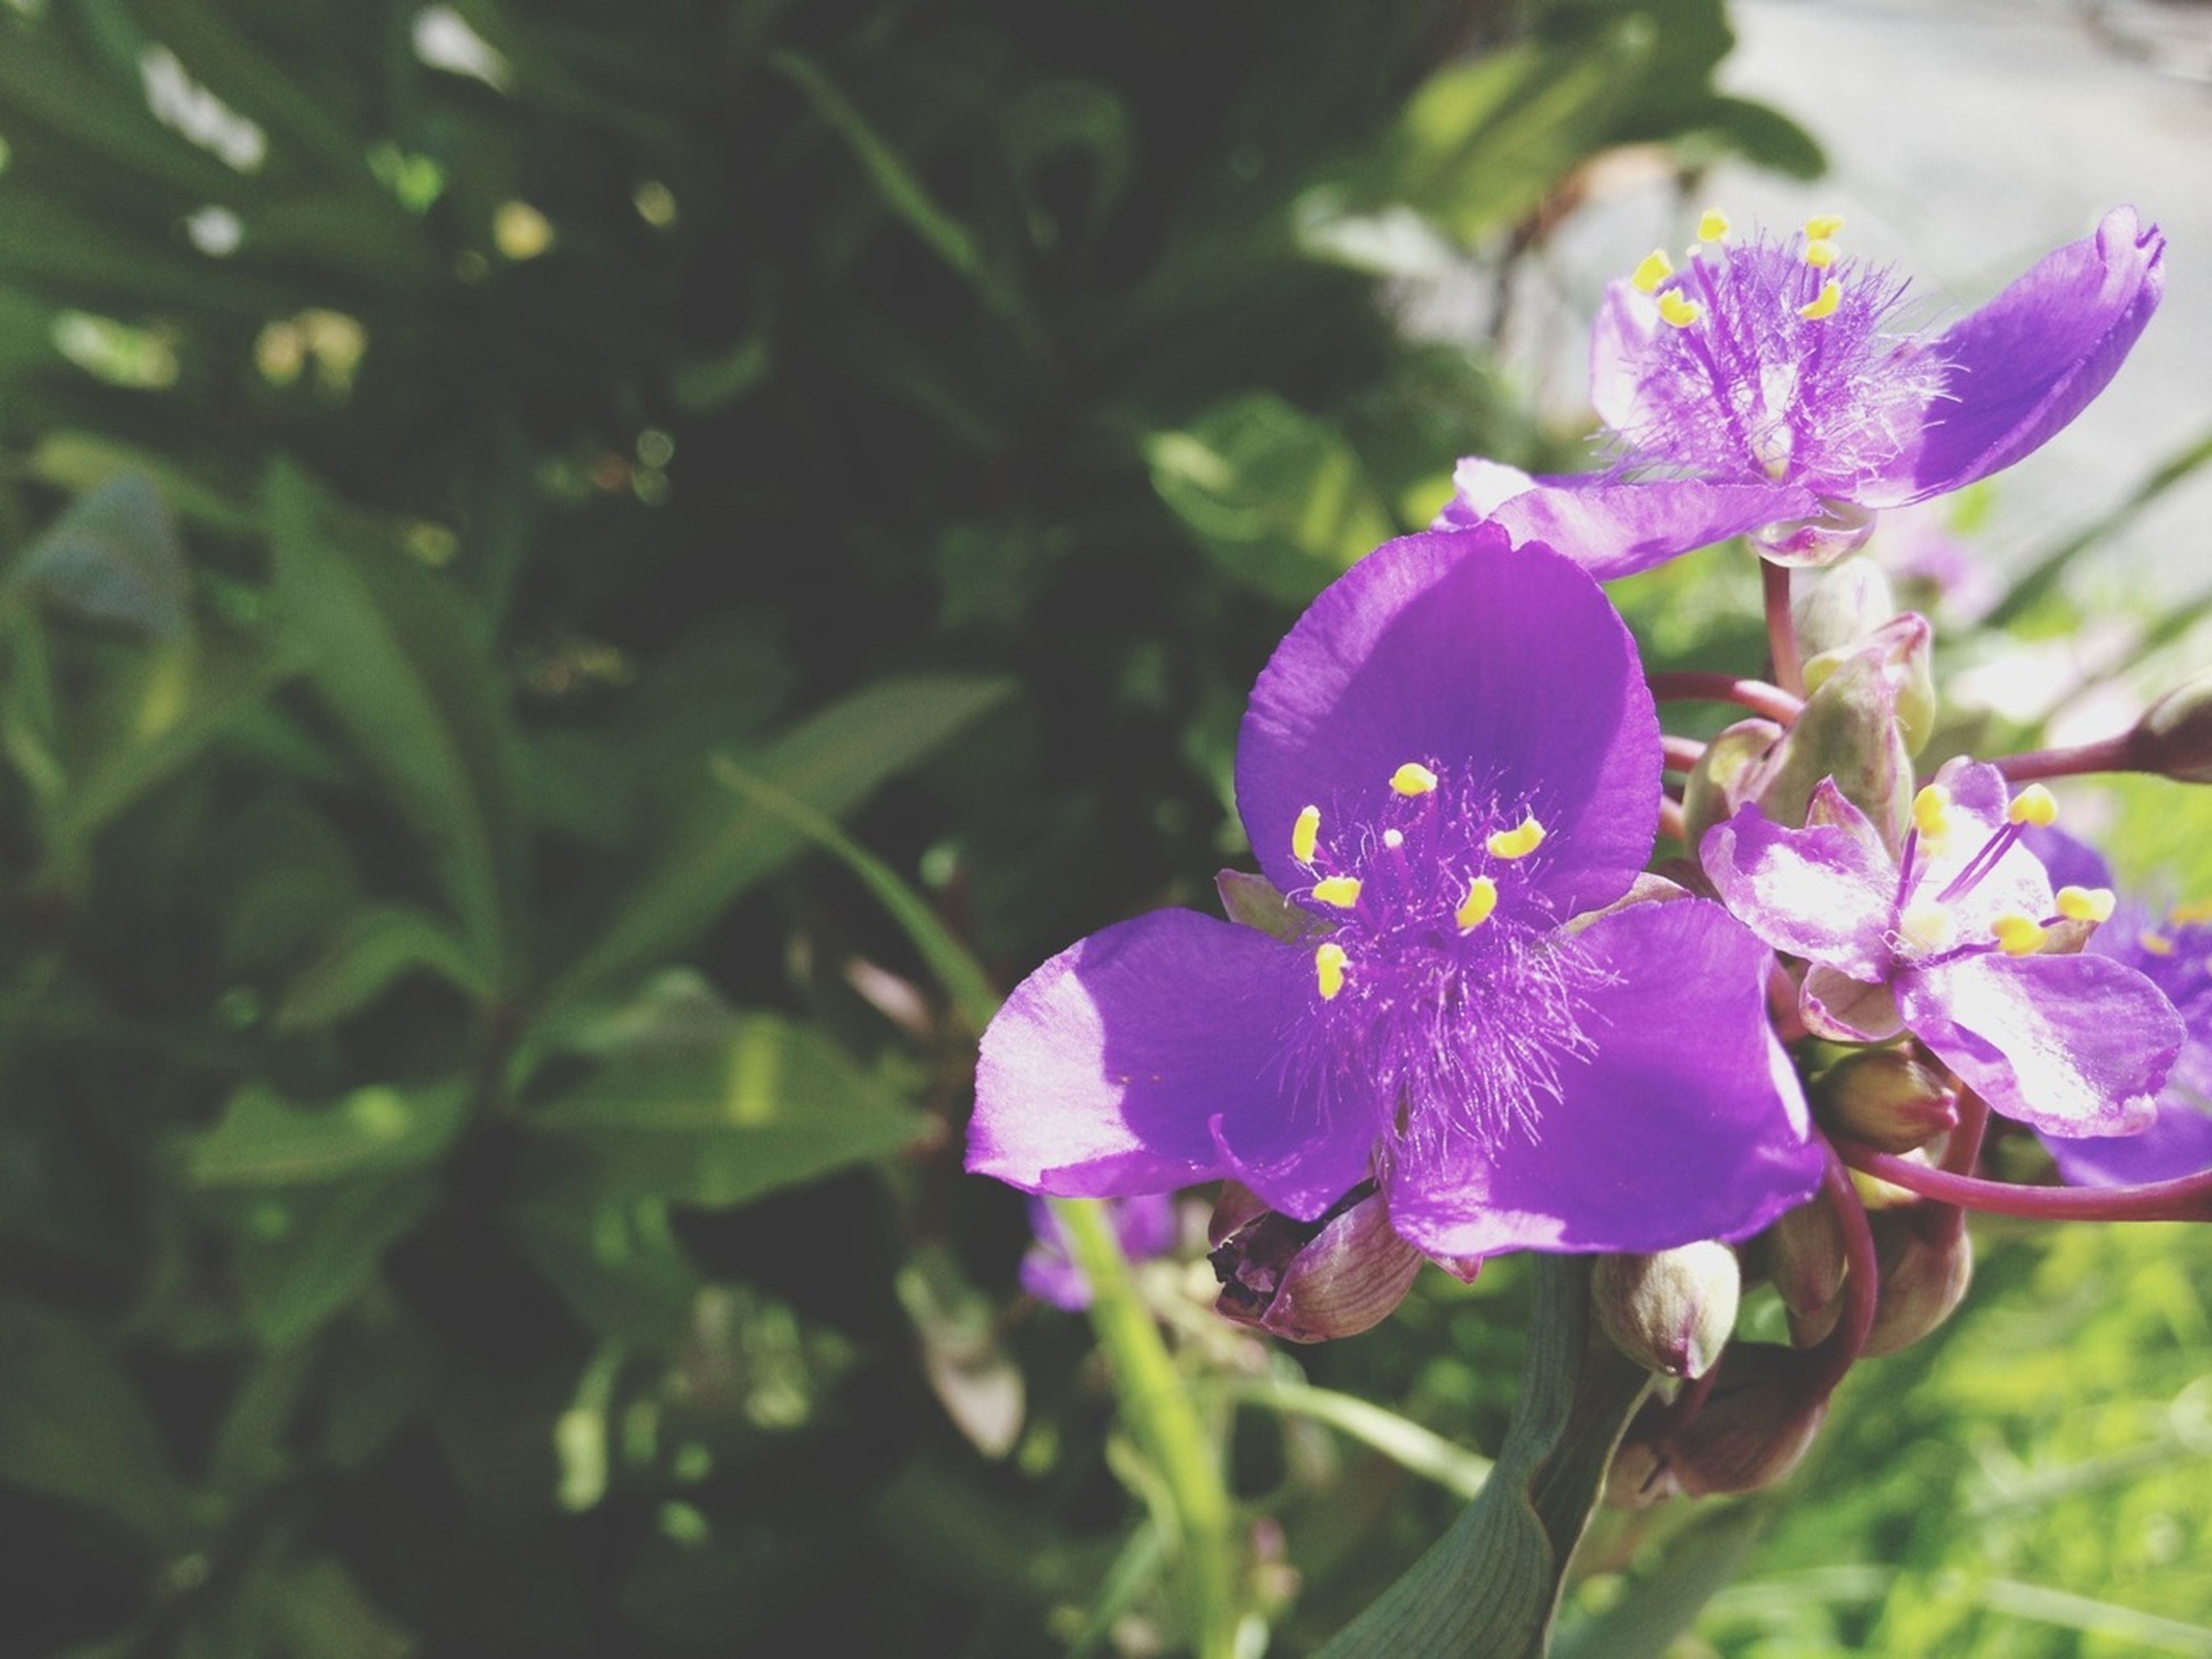 flower, freshness, petal, fragility, flower head, growth, purple, beauty in nature, close-up, blooming, focus on foreground, plant, nature, in bloom, pollen, stem, pink color, day, outdoors, no people